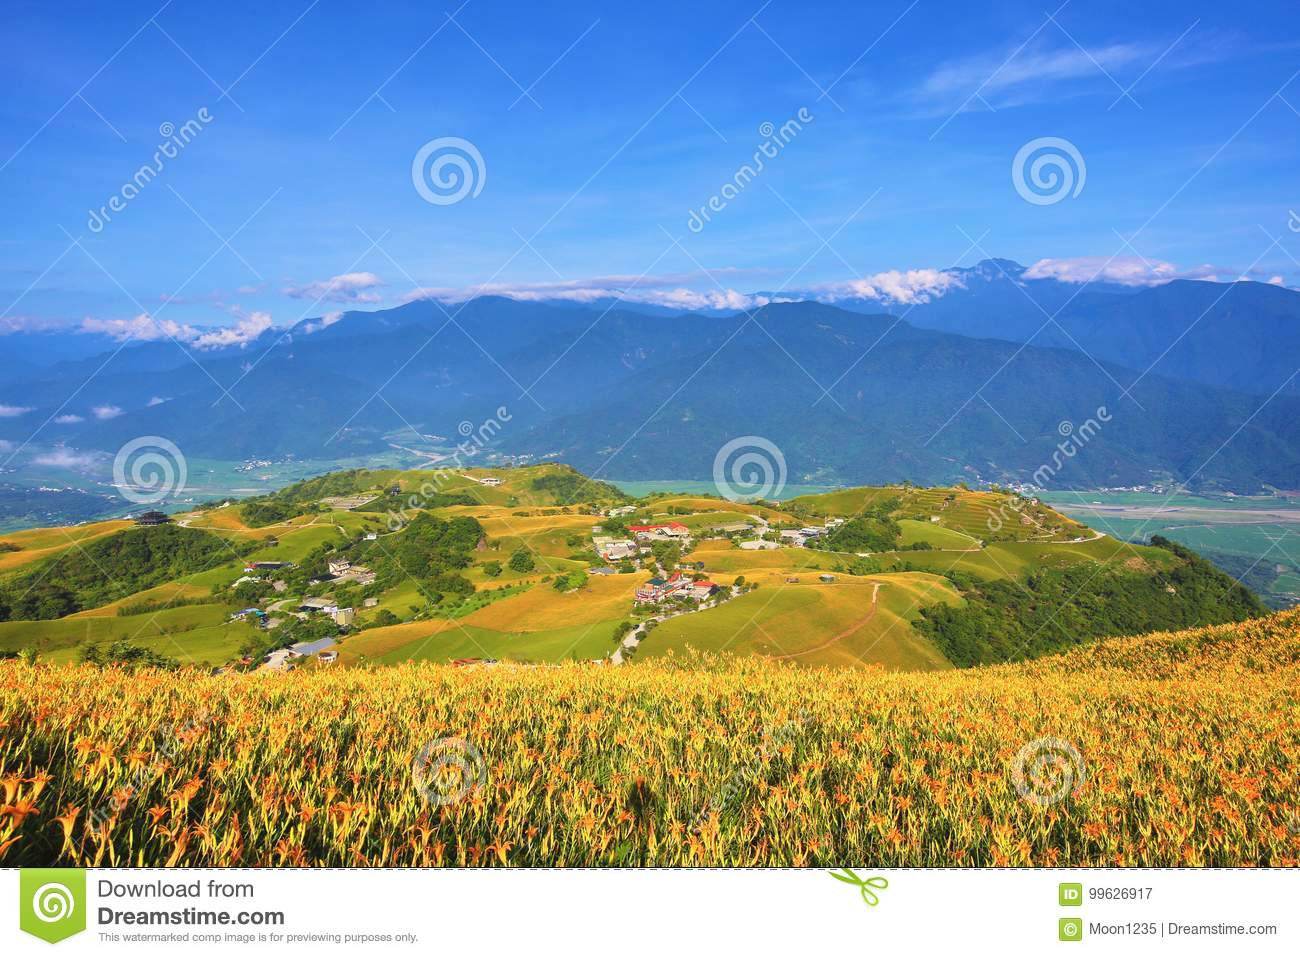 Beautiful scenery of daylily flowers with village and mountains beautiful scenery of daylily flowers with village and mountains izmirmasajfo